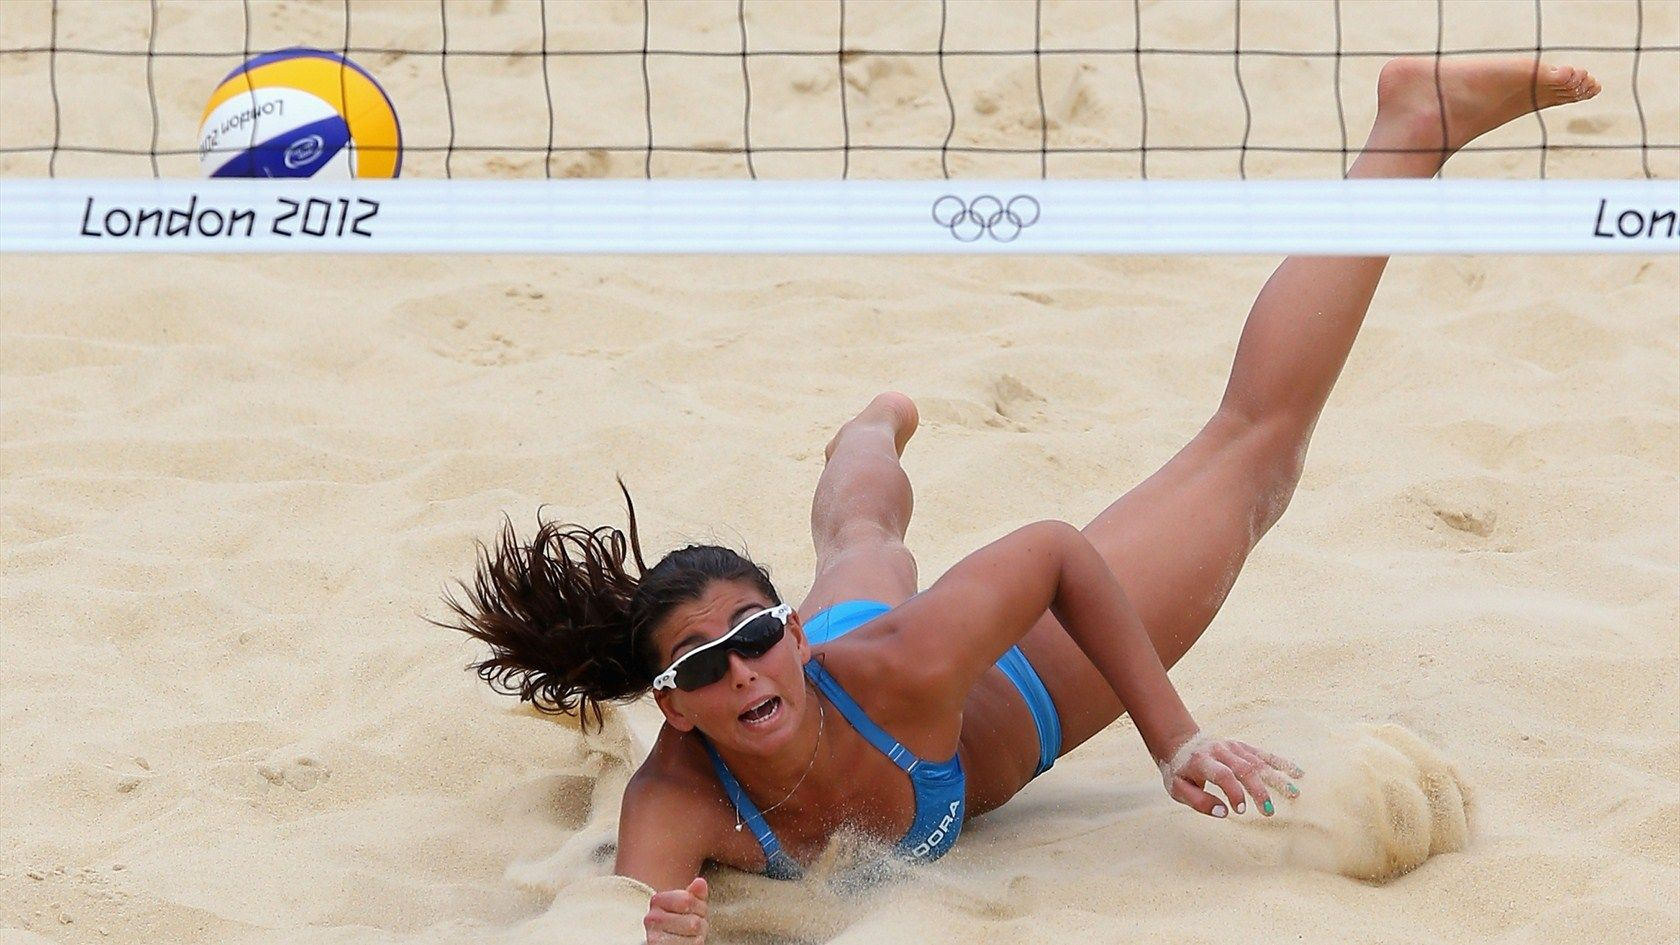 Italian Beach Volleyball Player Marta Menegatti Throws Herself To Dig The Ball In Her Day 6 Match Again C Beach Volleyball Beautiful Athletes Volleyball Photos